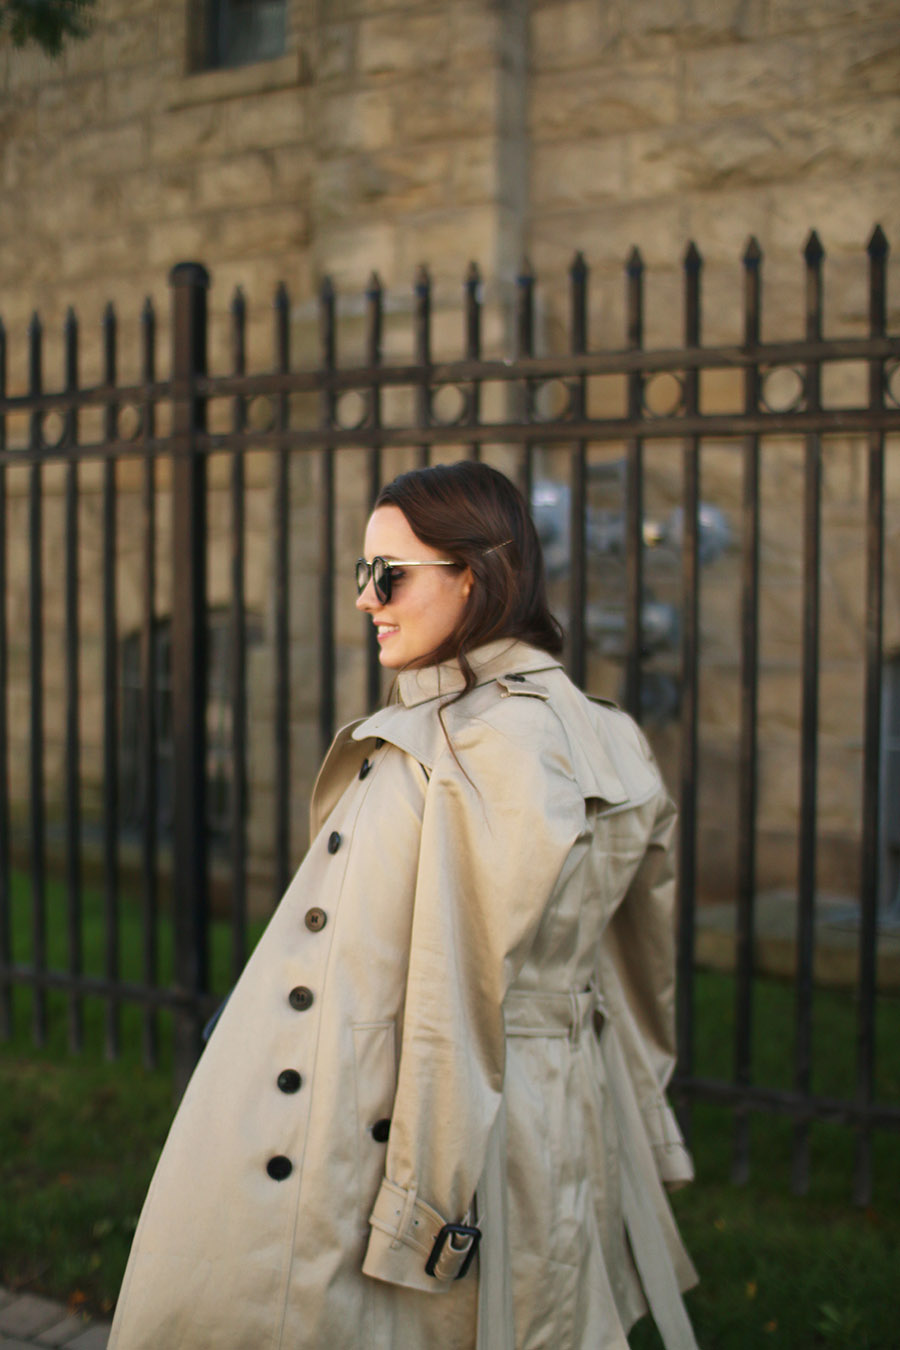 burberry-trench-coat-fashion-timeless-classics